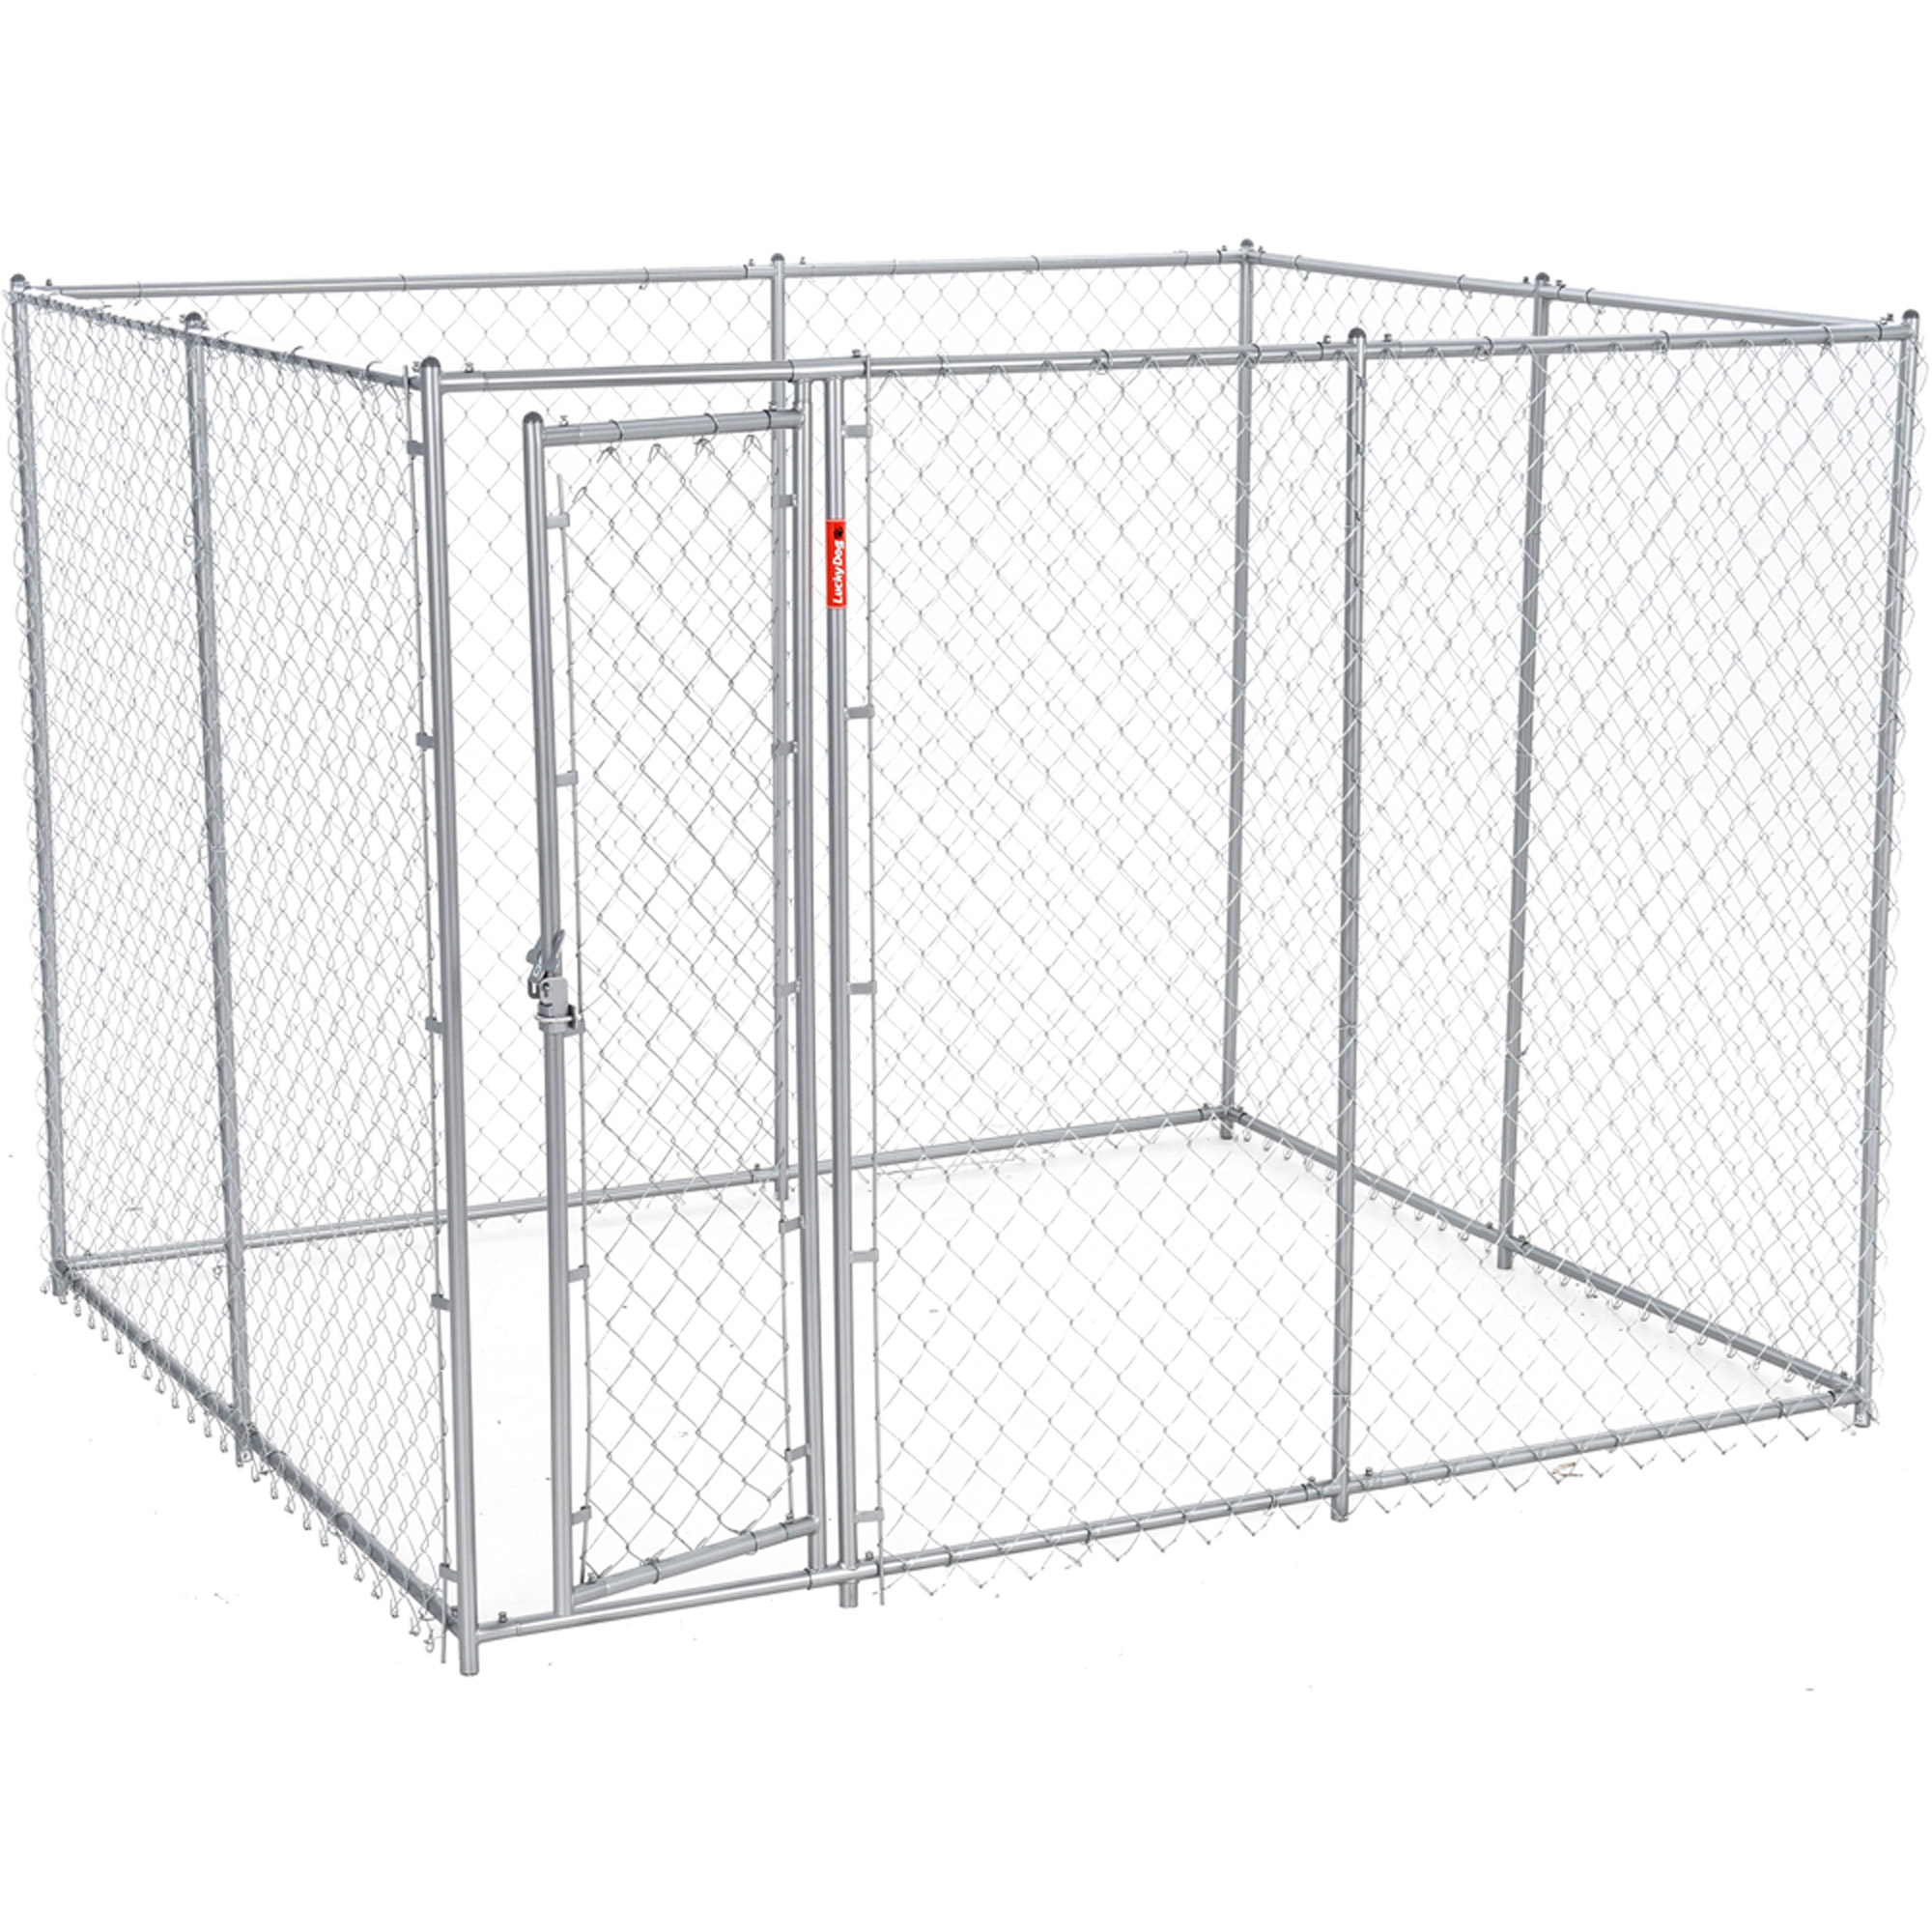 Lucky Dog 6'H x 5'W x 10'L/6'H x 8'W x 6.5'L Chain Link Boxed Kennel